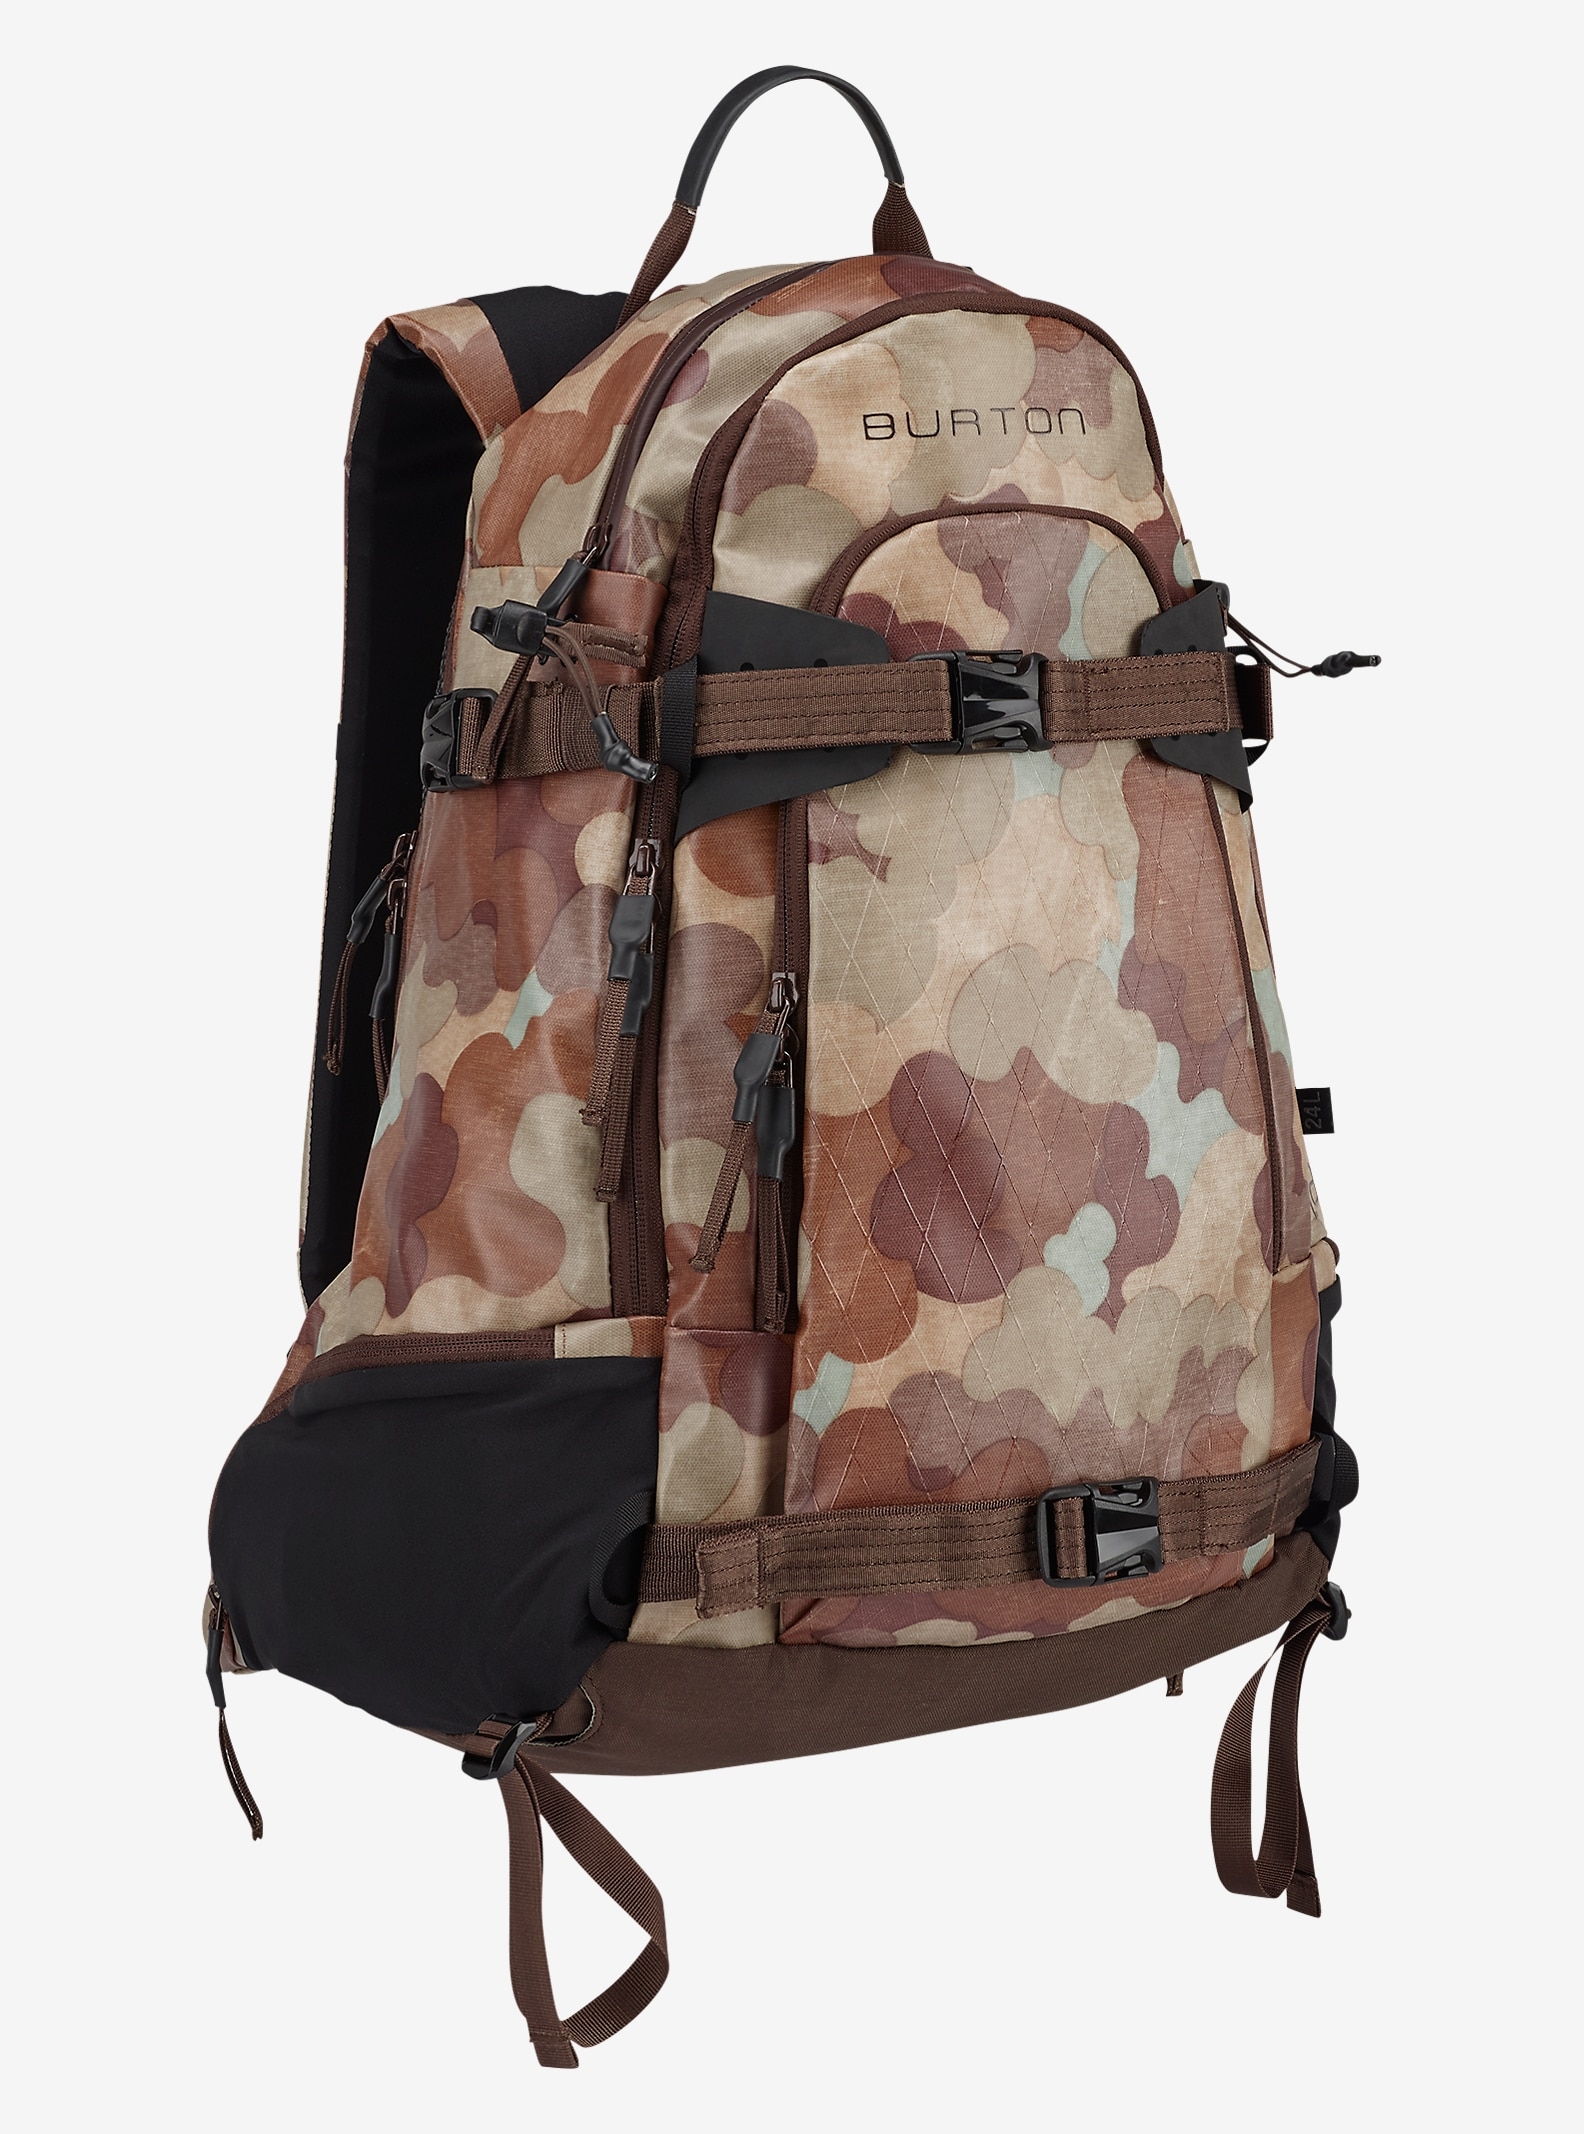 Burton Taft 24L Backpack shown in Storm Camo Tarp